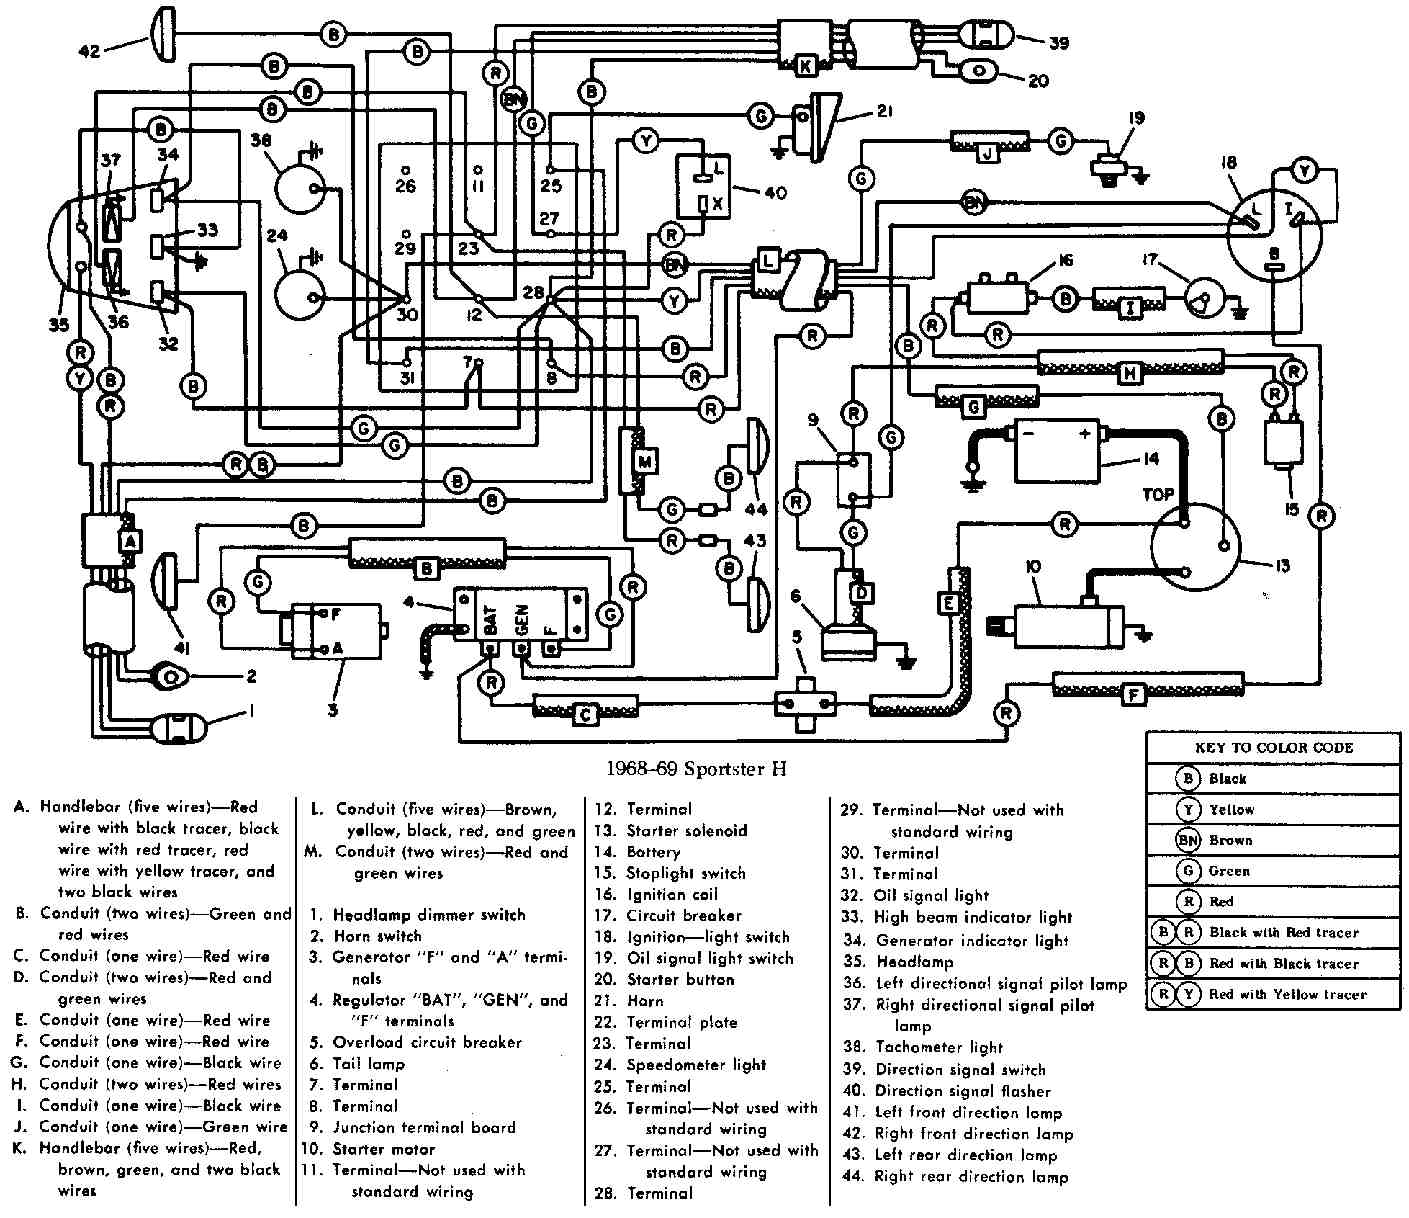 91 harley softail wiring schematic everything you need to know rh newsnanalysis co